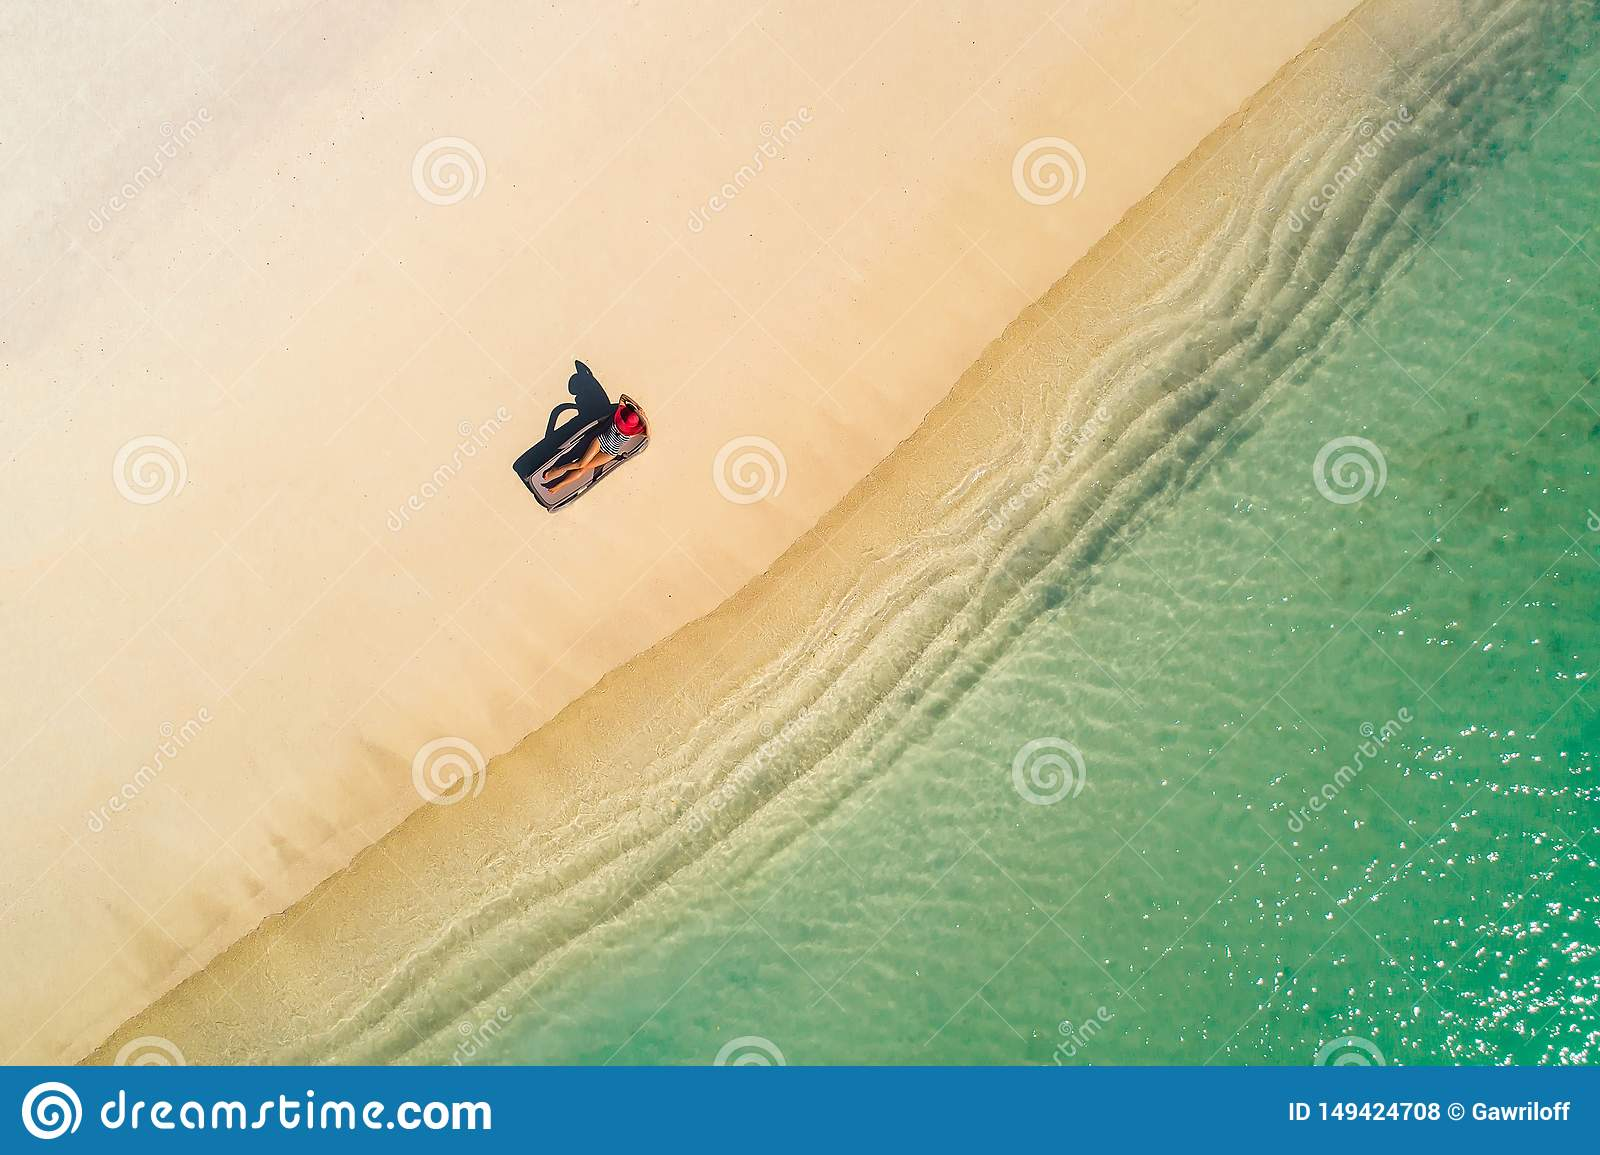 Aerial view of slim woman sunbathing lying on a beach chairin Seychelles. Summer seascape with girl, beautiful waves, colorful